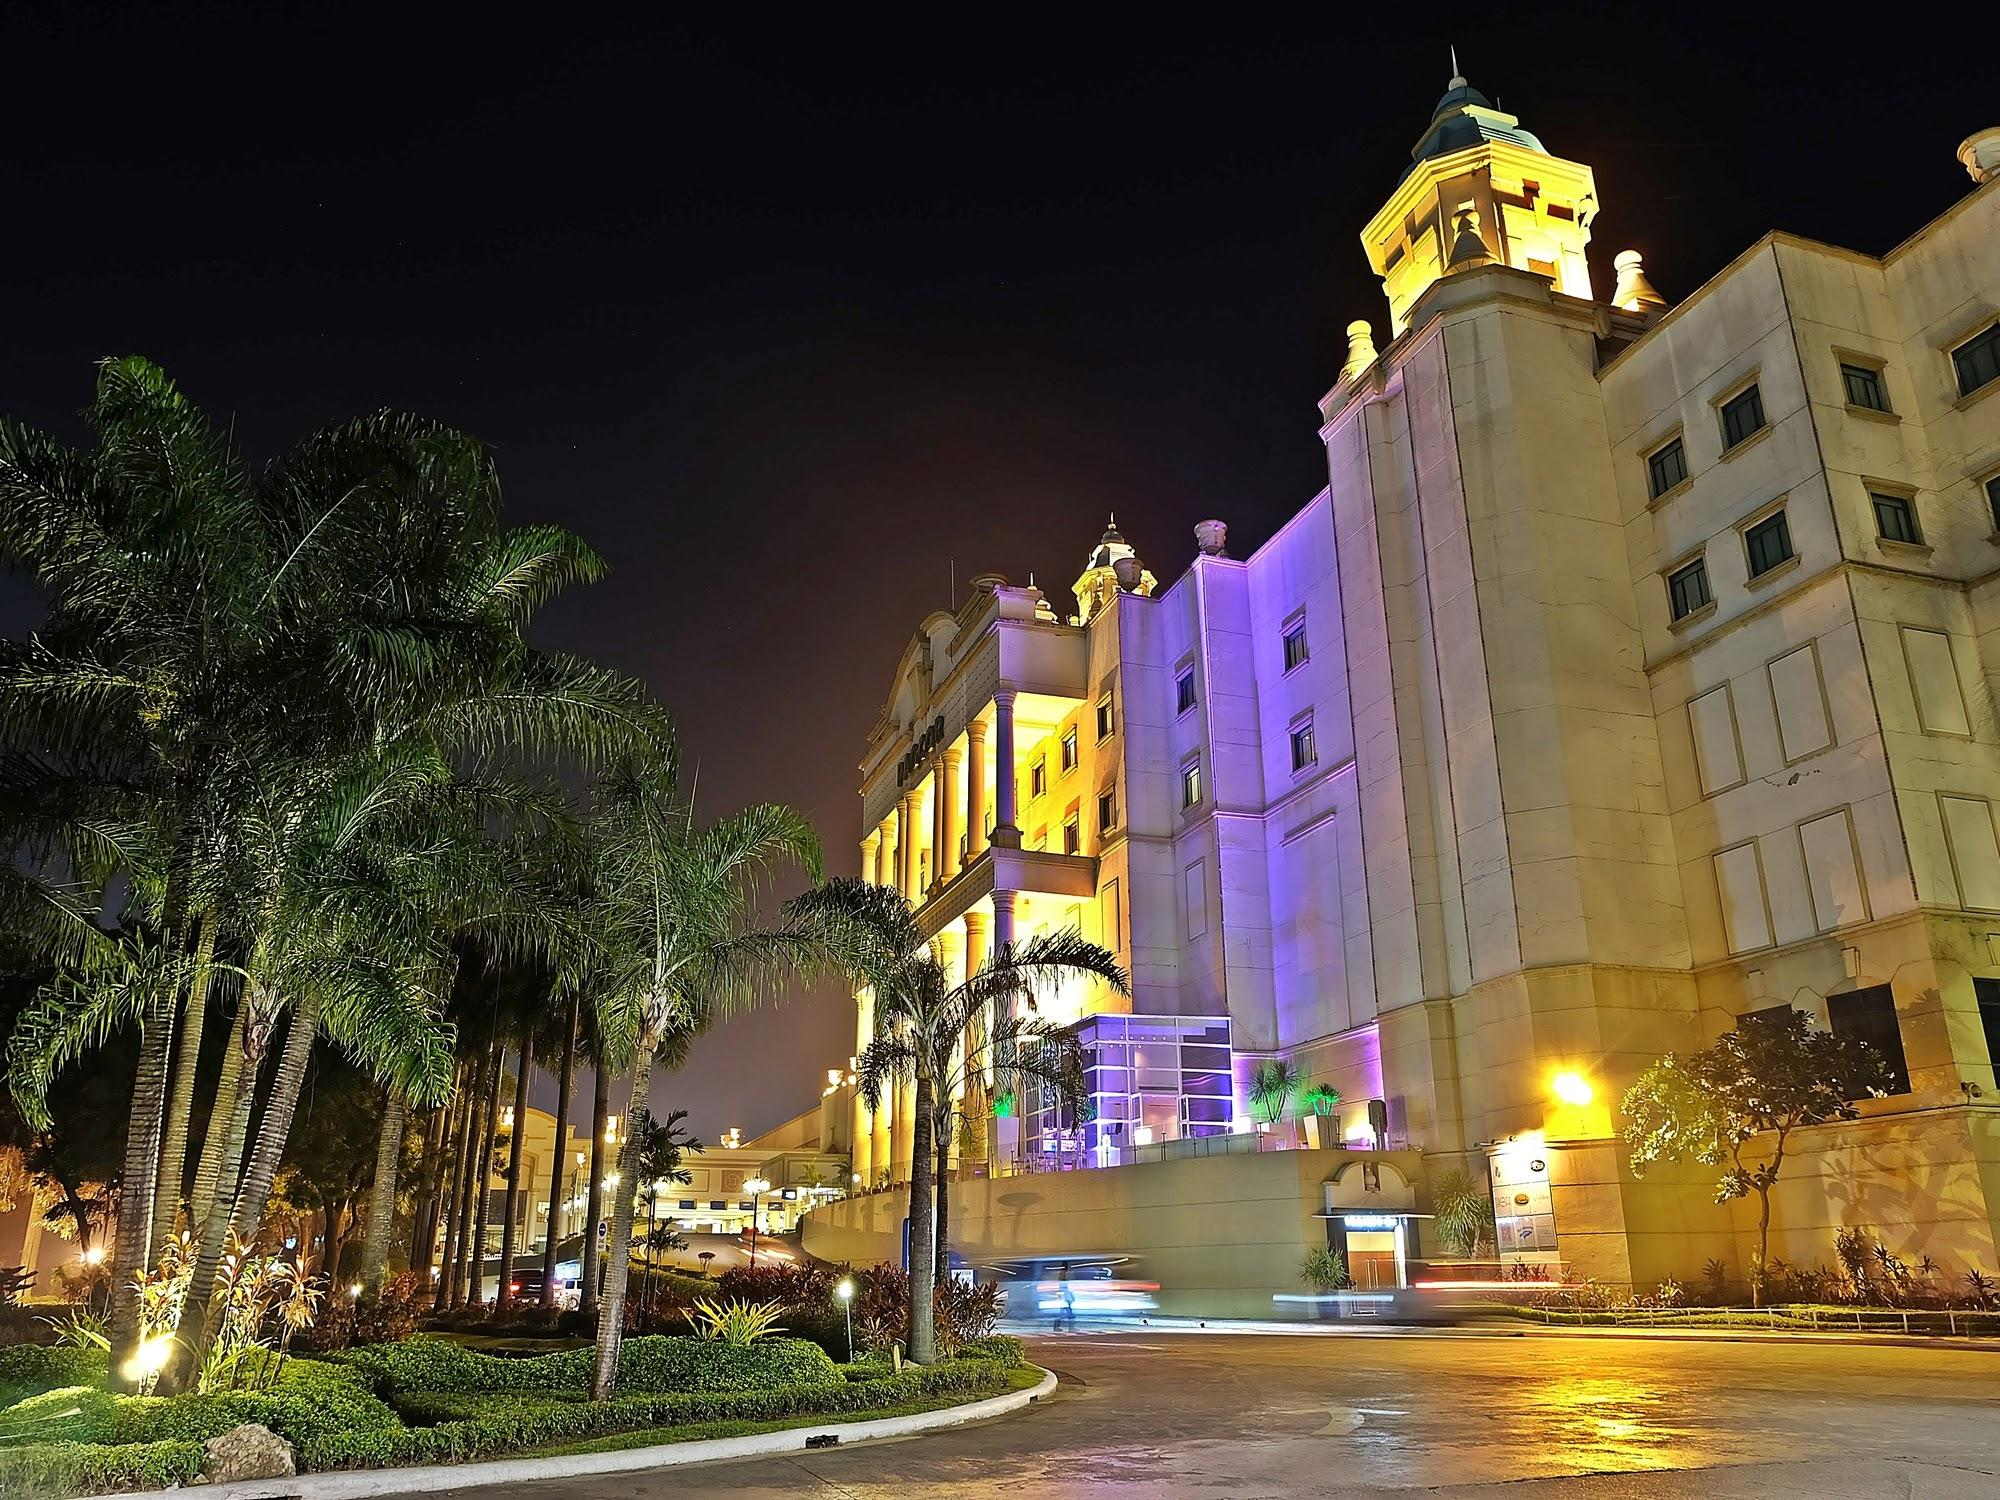 Waterfront Cebu City Hotel and Casino Sebu - Viešbučio išorė